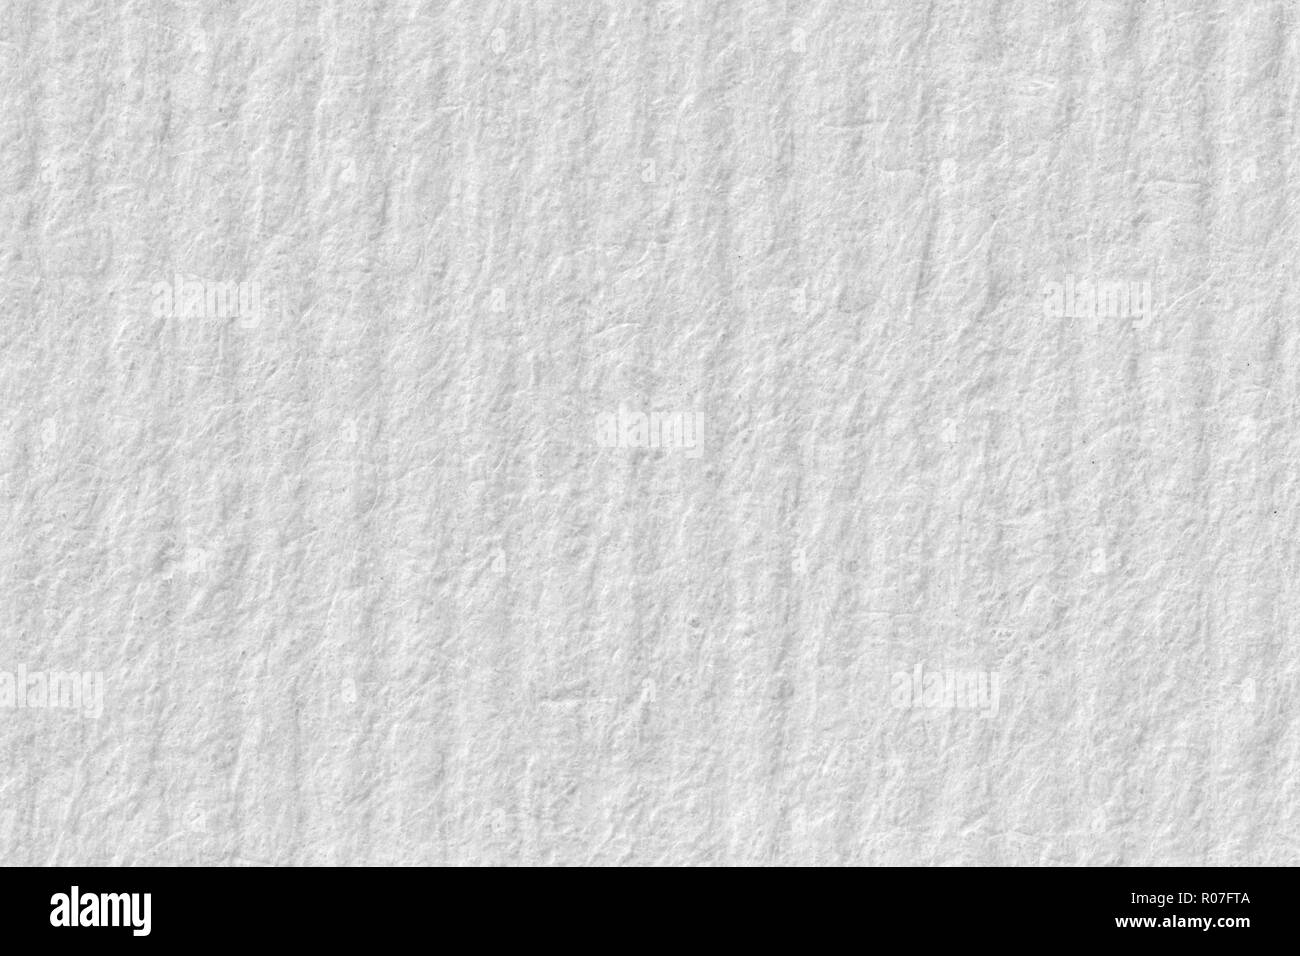 Art paper texture background. Striped white paper. - Stock Image